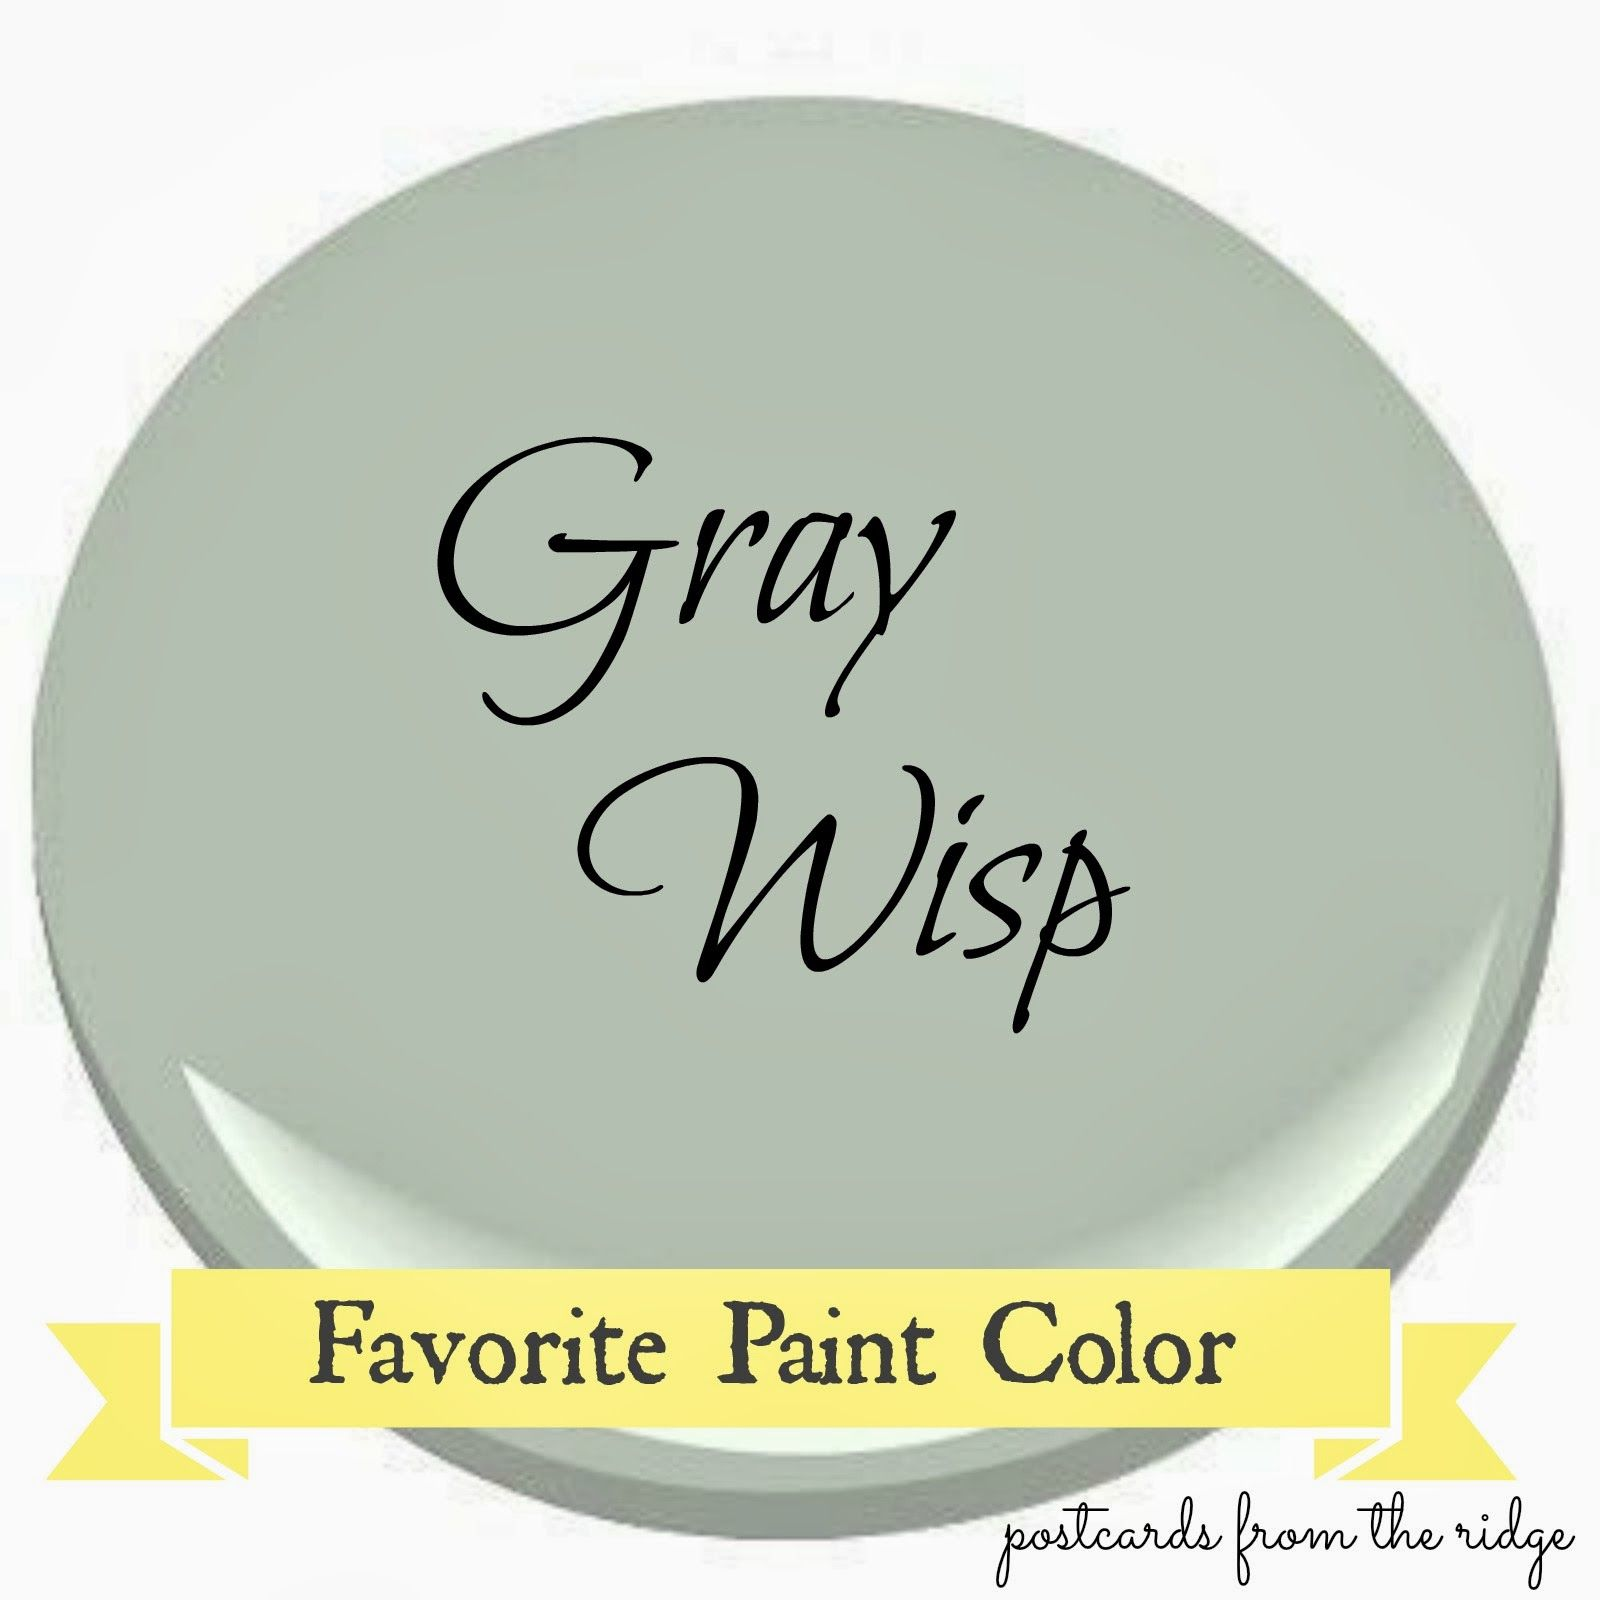 Benjamin Moore Gray Wisp Favorite Paint Color Favorite Paint Colors Favorite Paint Benjamin Moore Gray